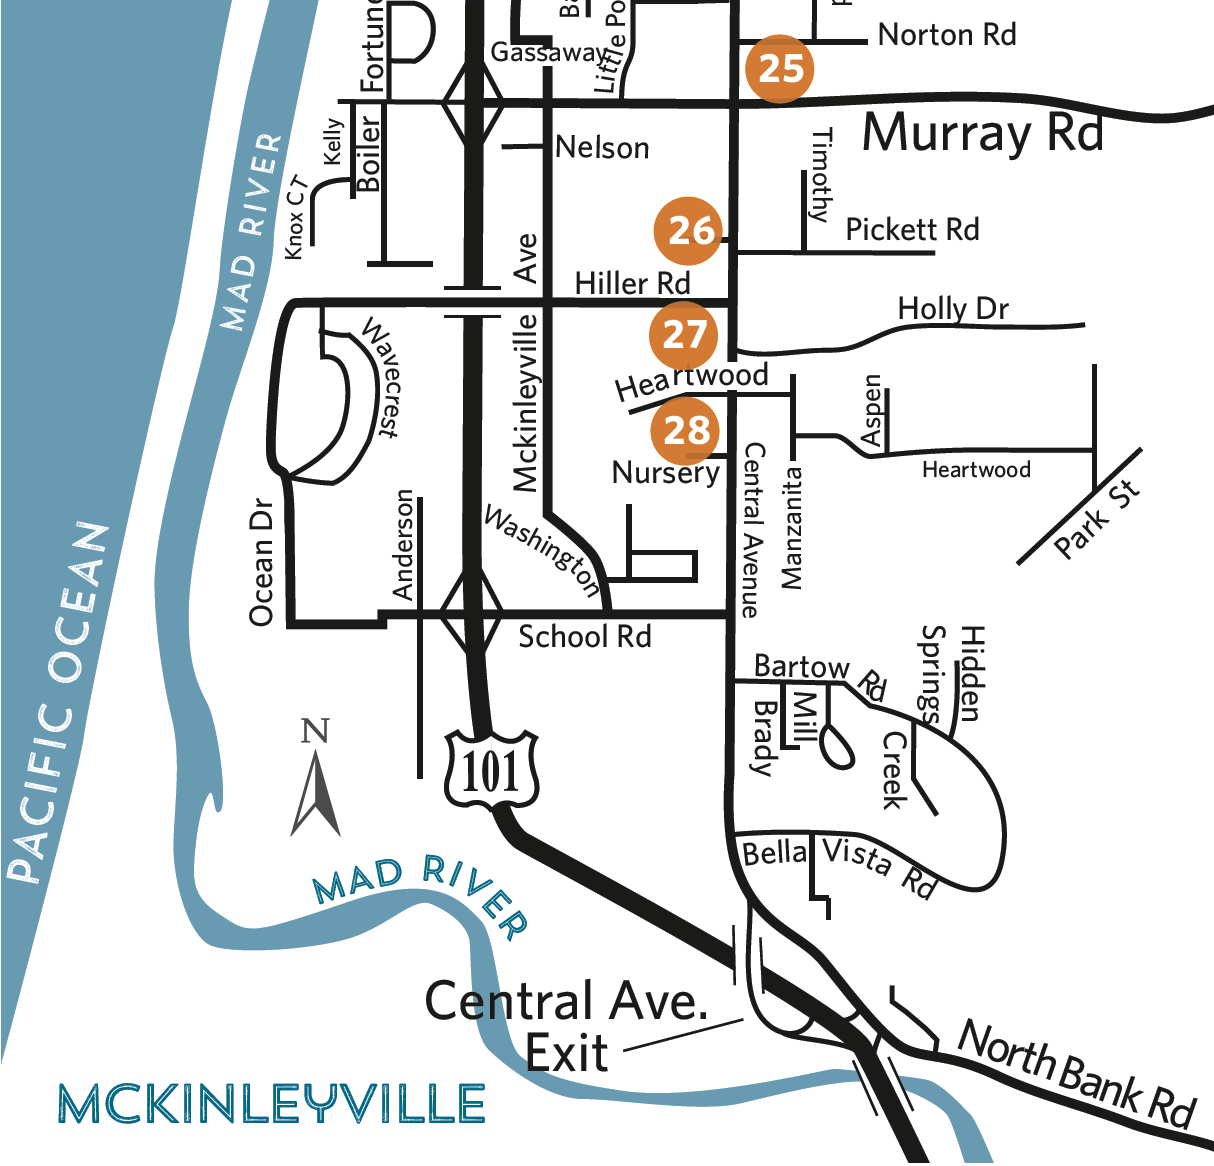 Overview map of locations - McKinleyville